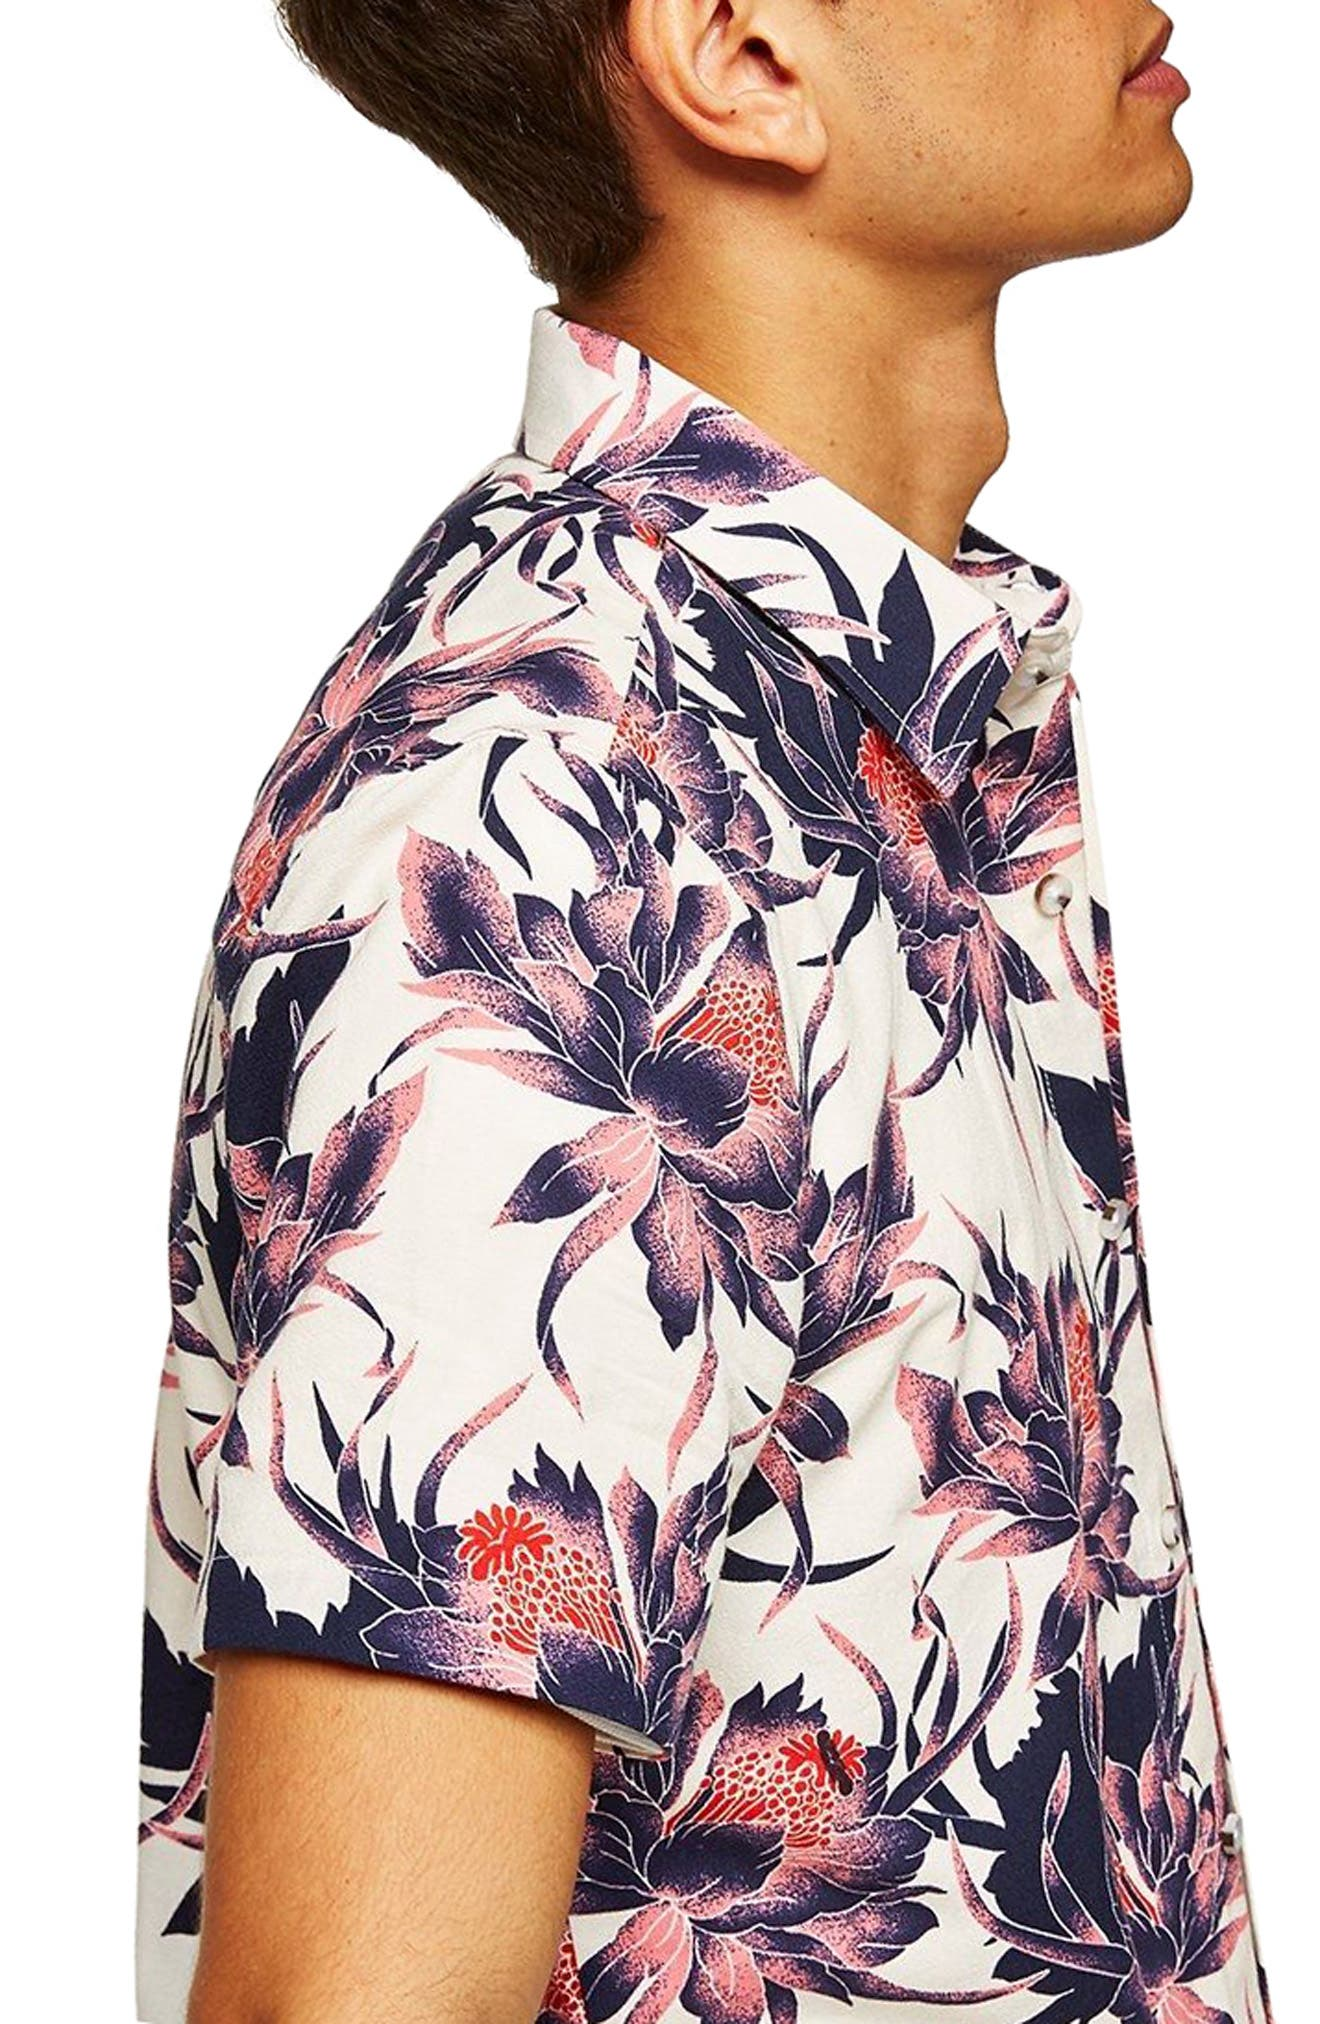 Floral Print Shirt,                             Alternate thumbnail 2, color,                             100